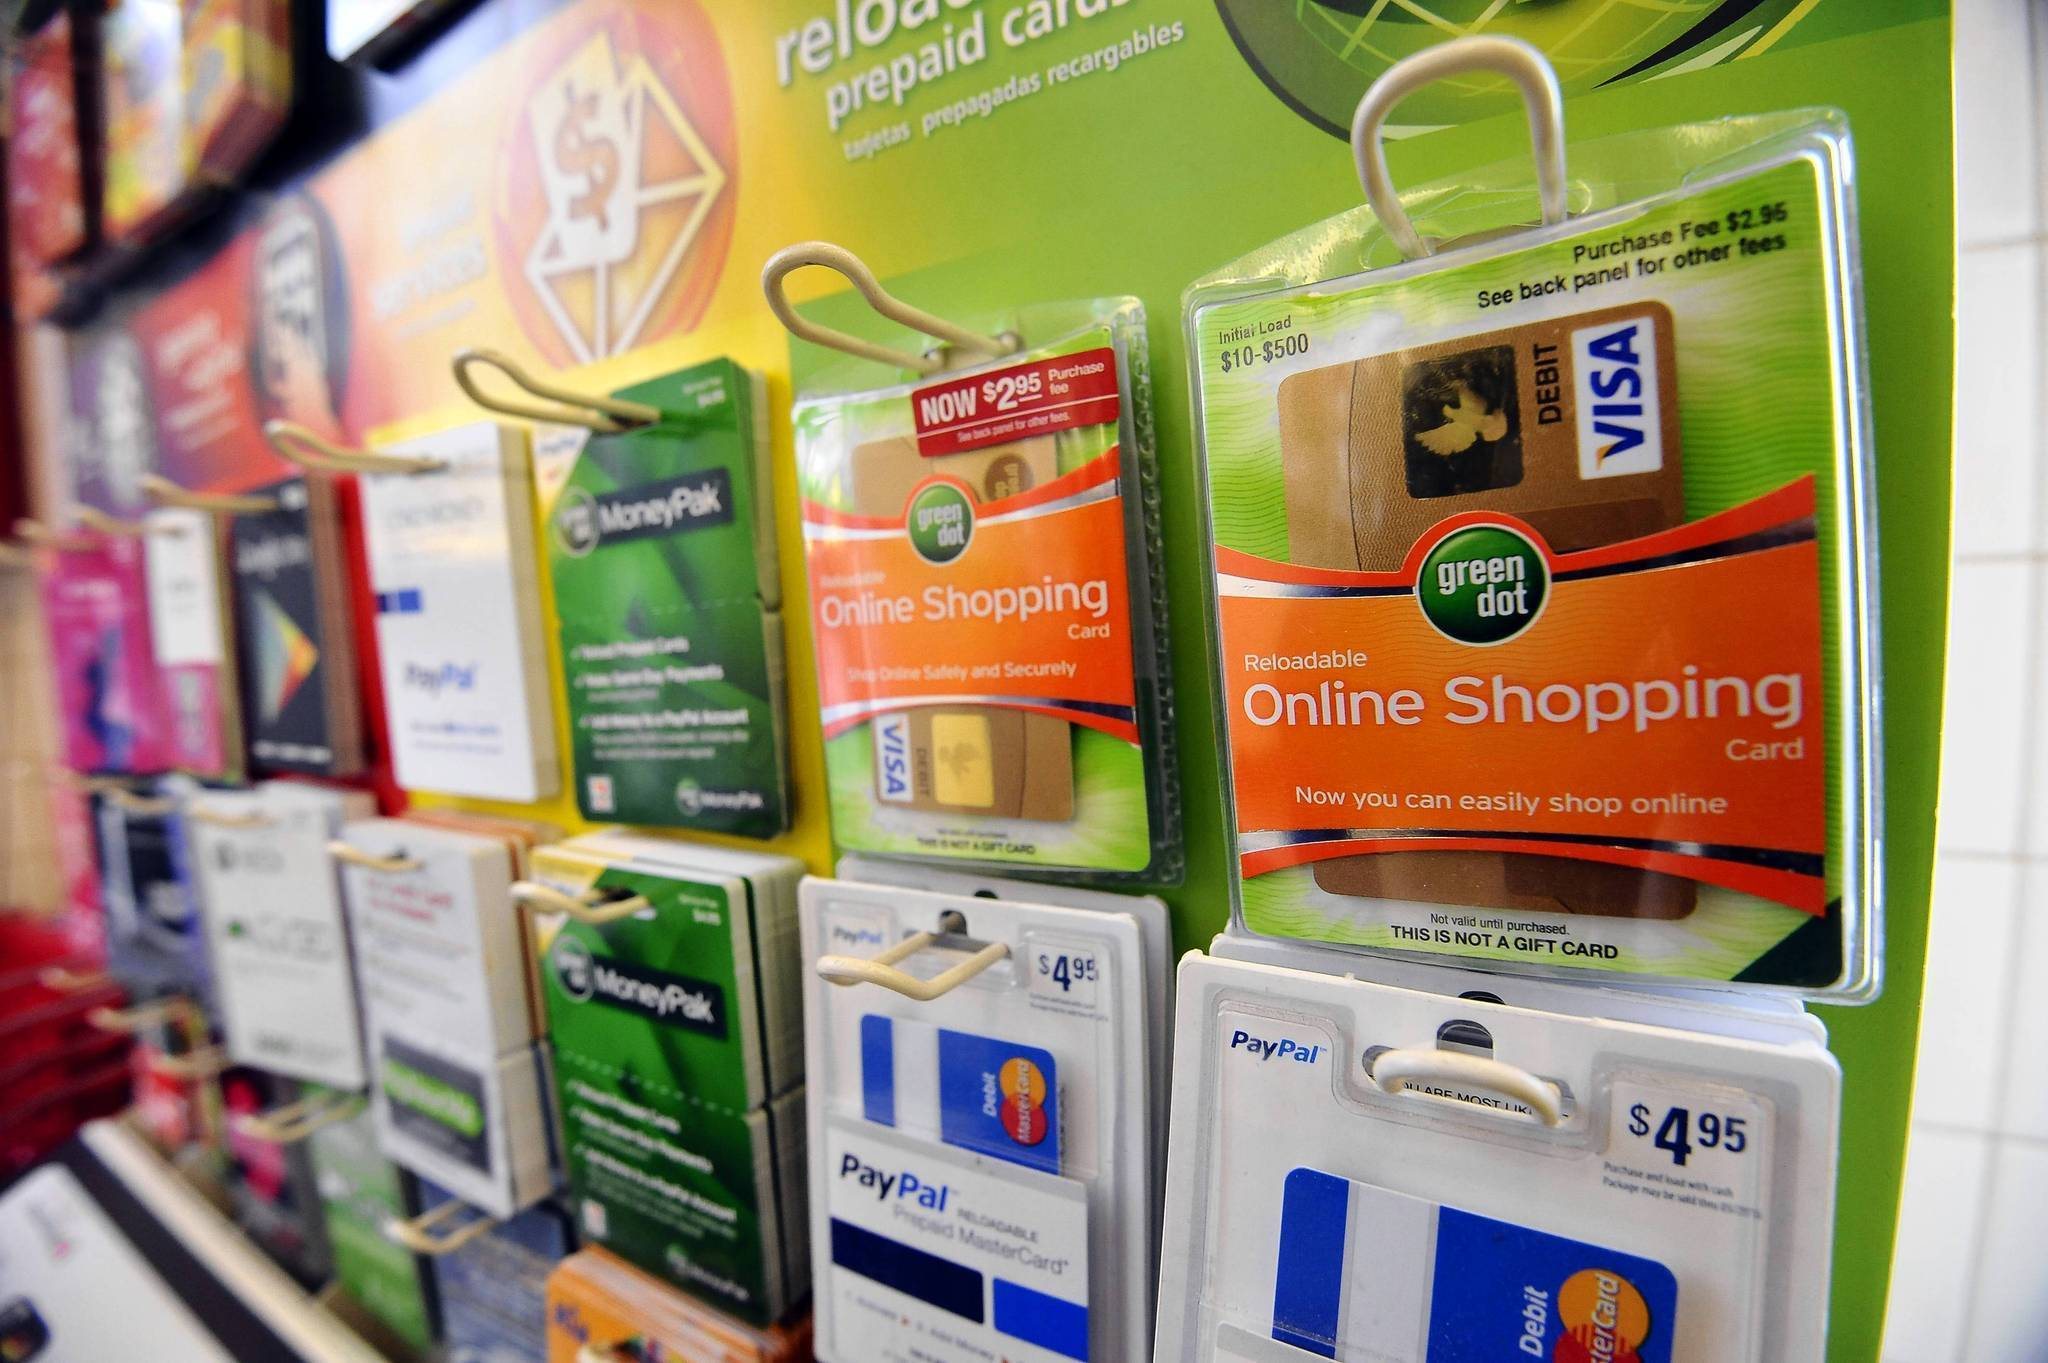 Pre-paid 'Green Dot' cards, phones and codes become inmates